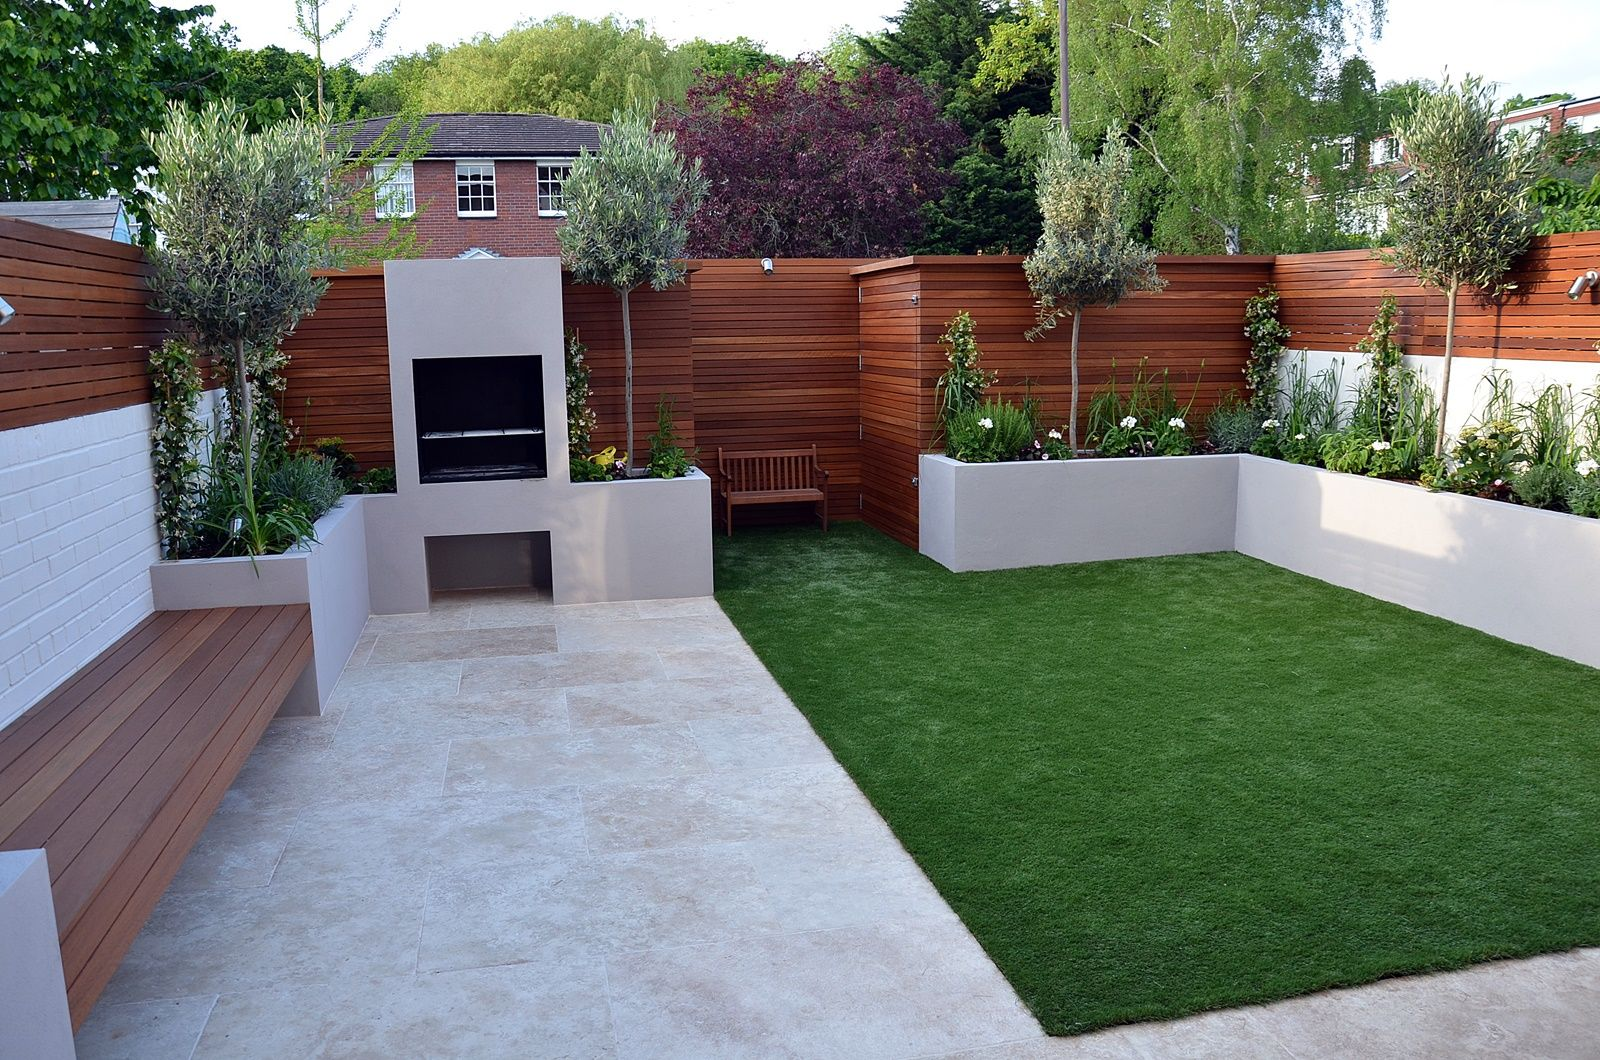 Contemporary garden design ideas balham clapham dulwich for Garden design pinterest